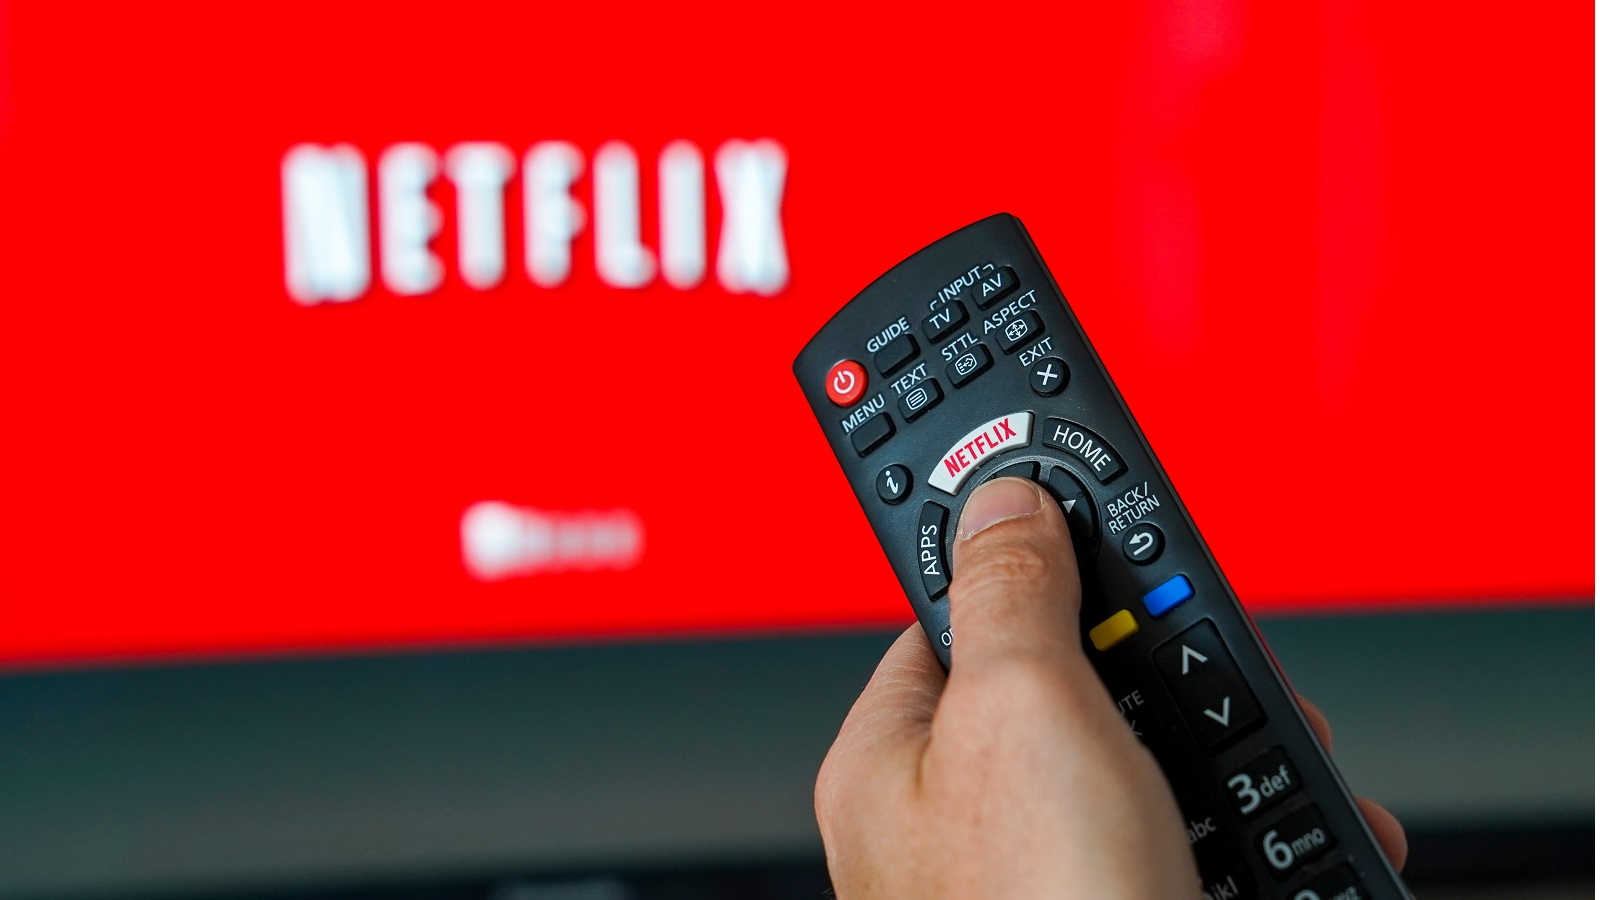 Video Streaming to TVs Soared 85% in U.S. in First Three Weeks of March, Nielsen Says